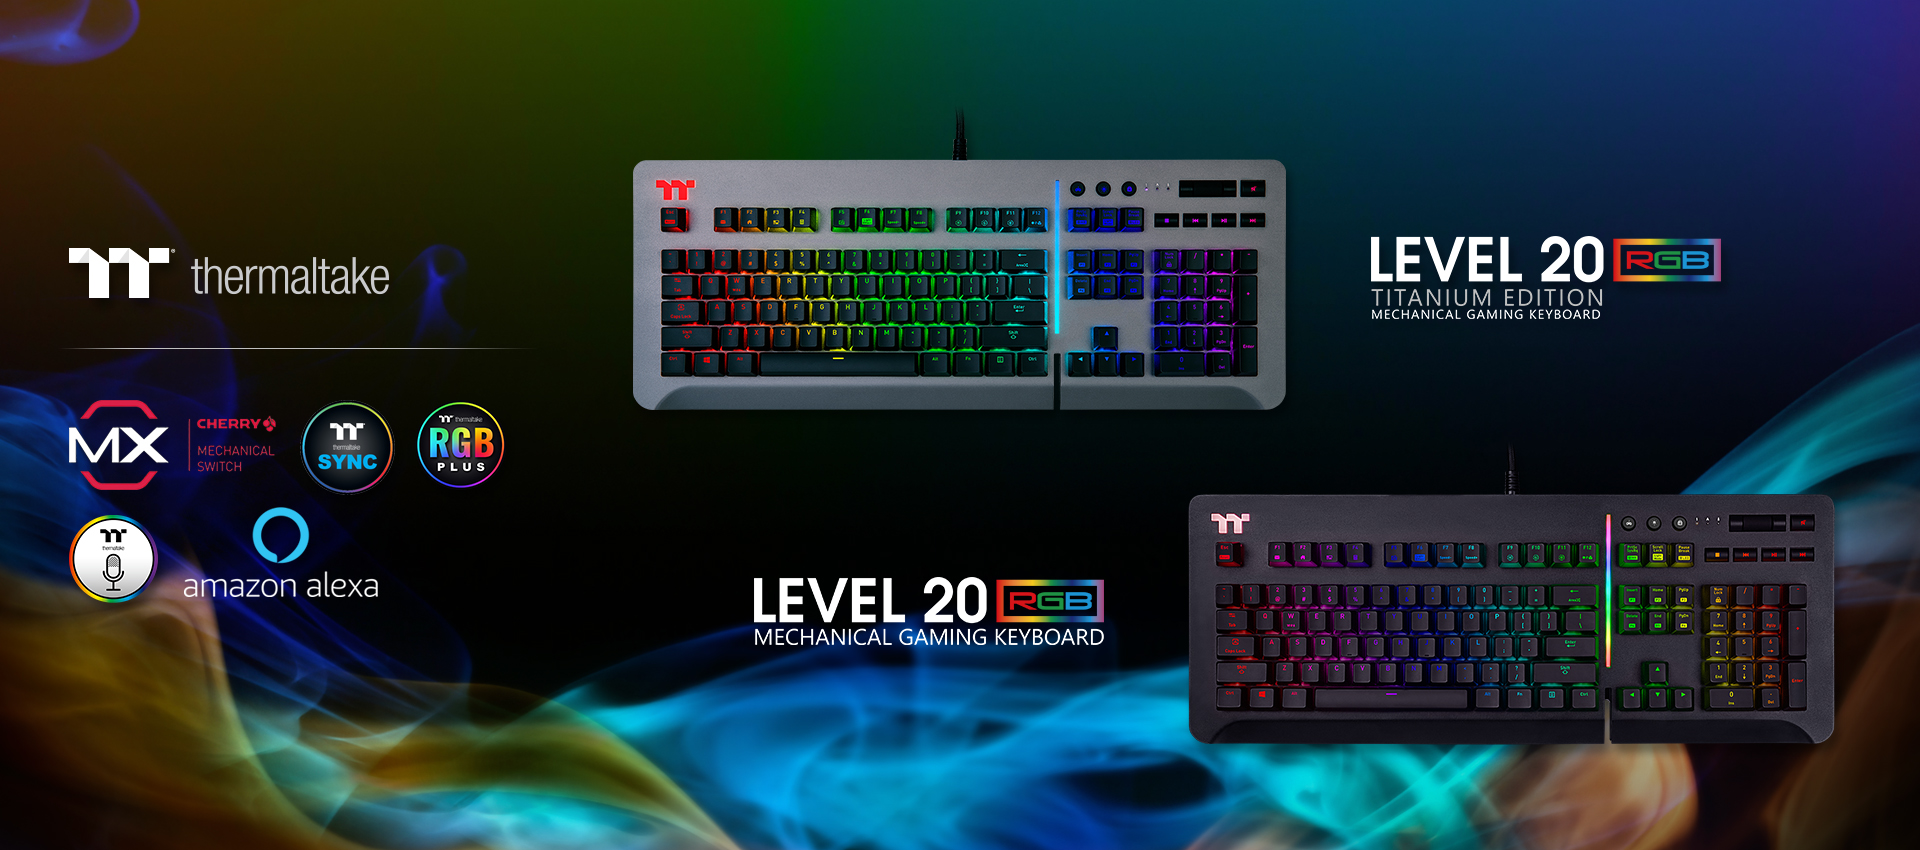 Level 20 RGB Titanium Gaming Keyboard